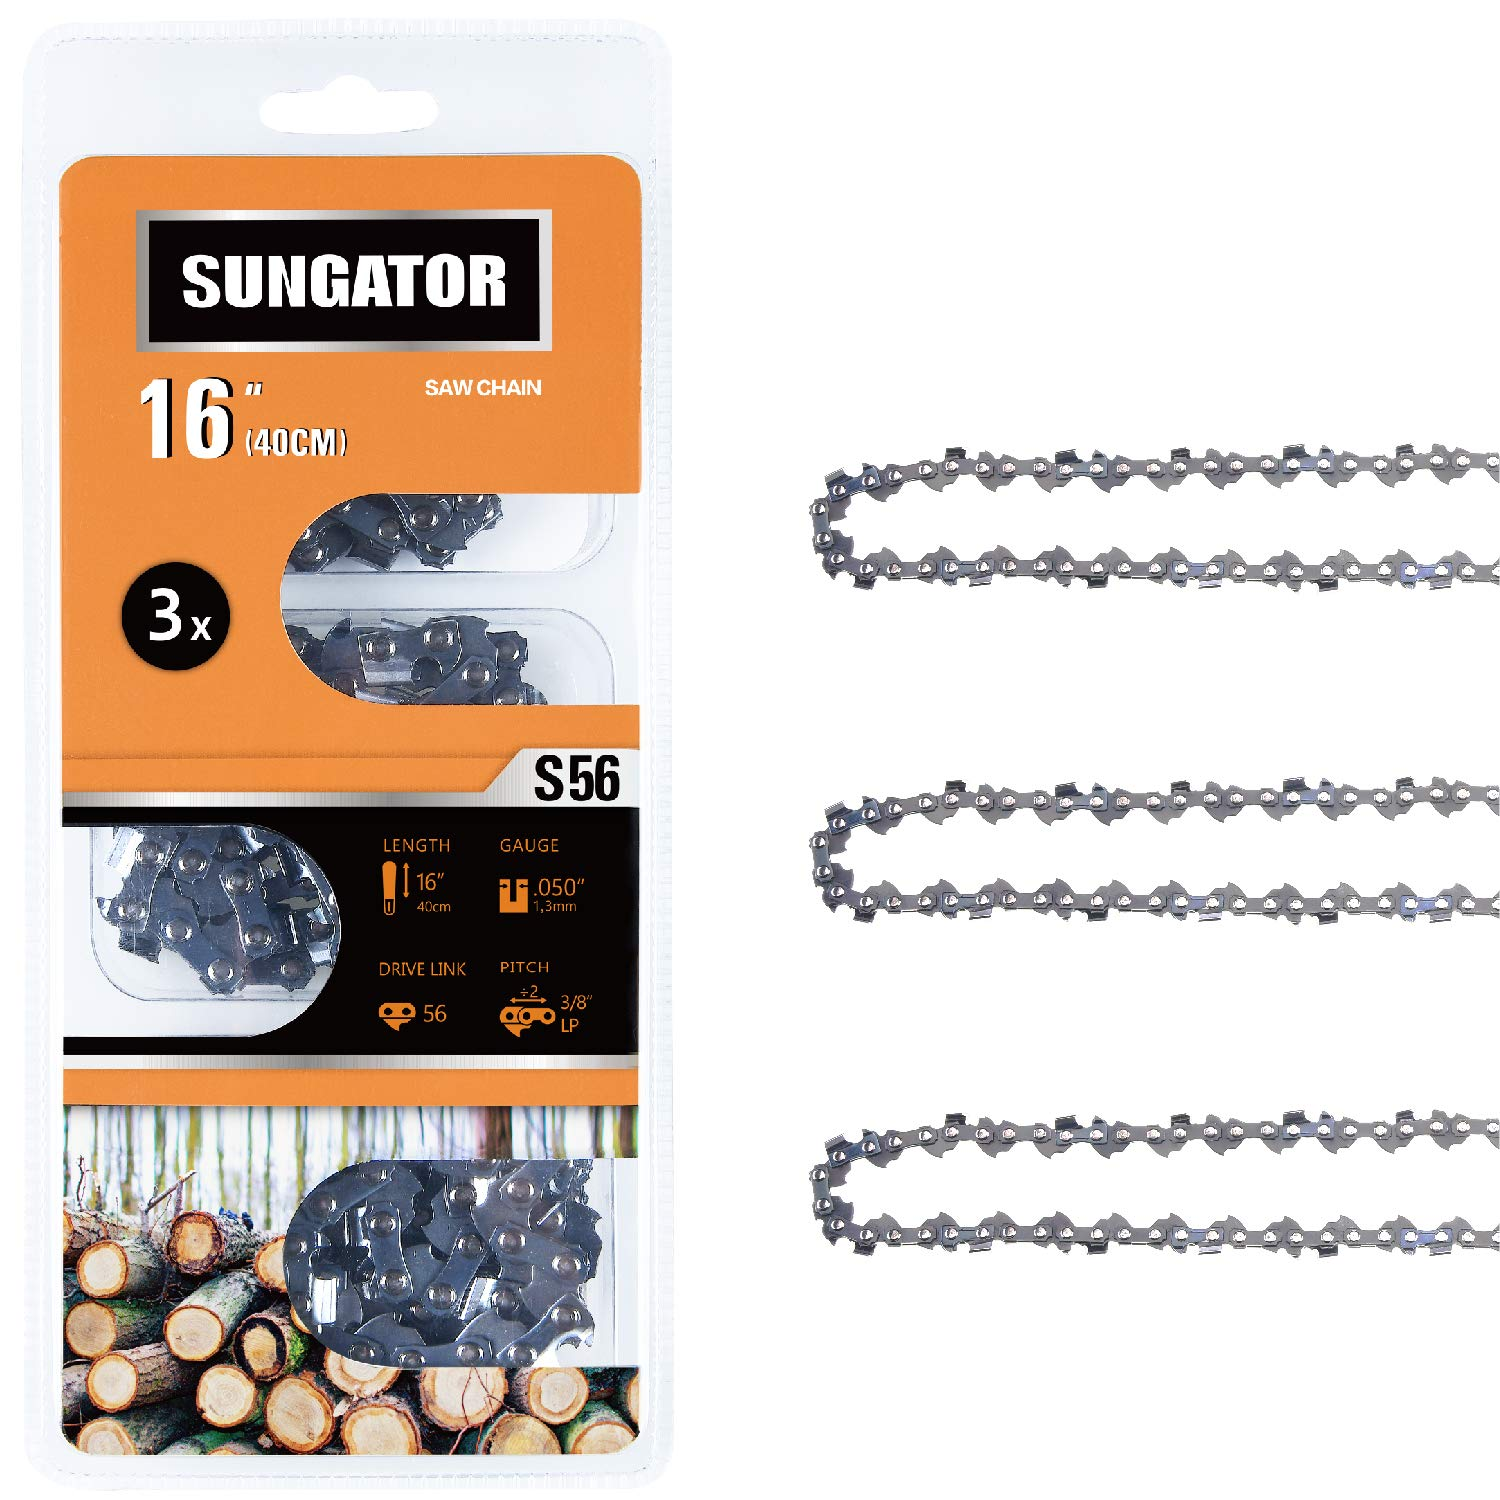 SUNGATOR 3-Pack 16 Inch Chainsaw Chain SG-S56, 3/8'' LP Pitch - .050'' Gauge - 56 Drive Links Fits Echo, Homelite, Poulan, Remington, Greenworks by SUNGATOR